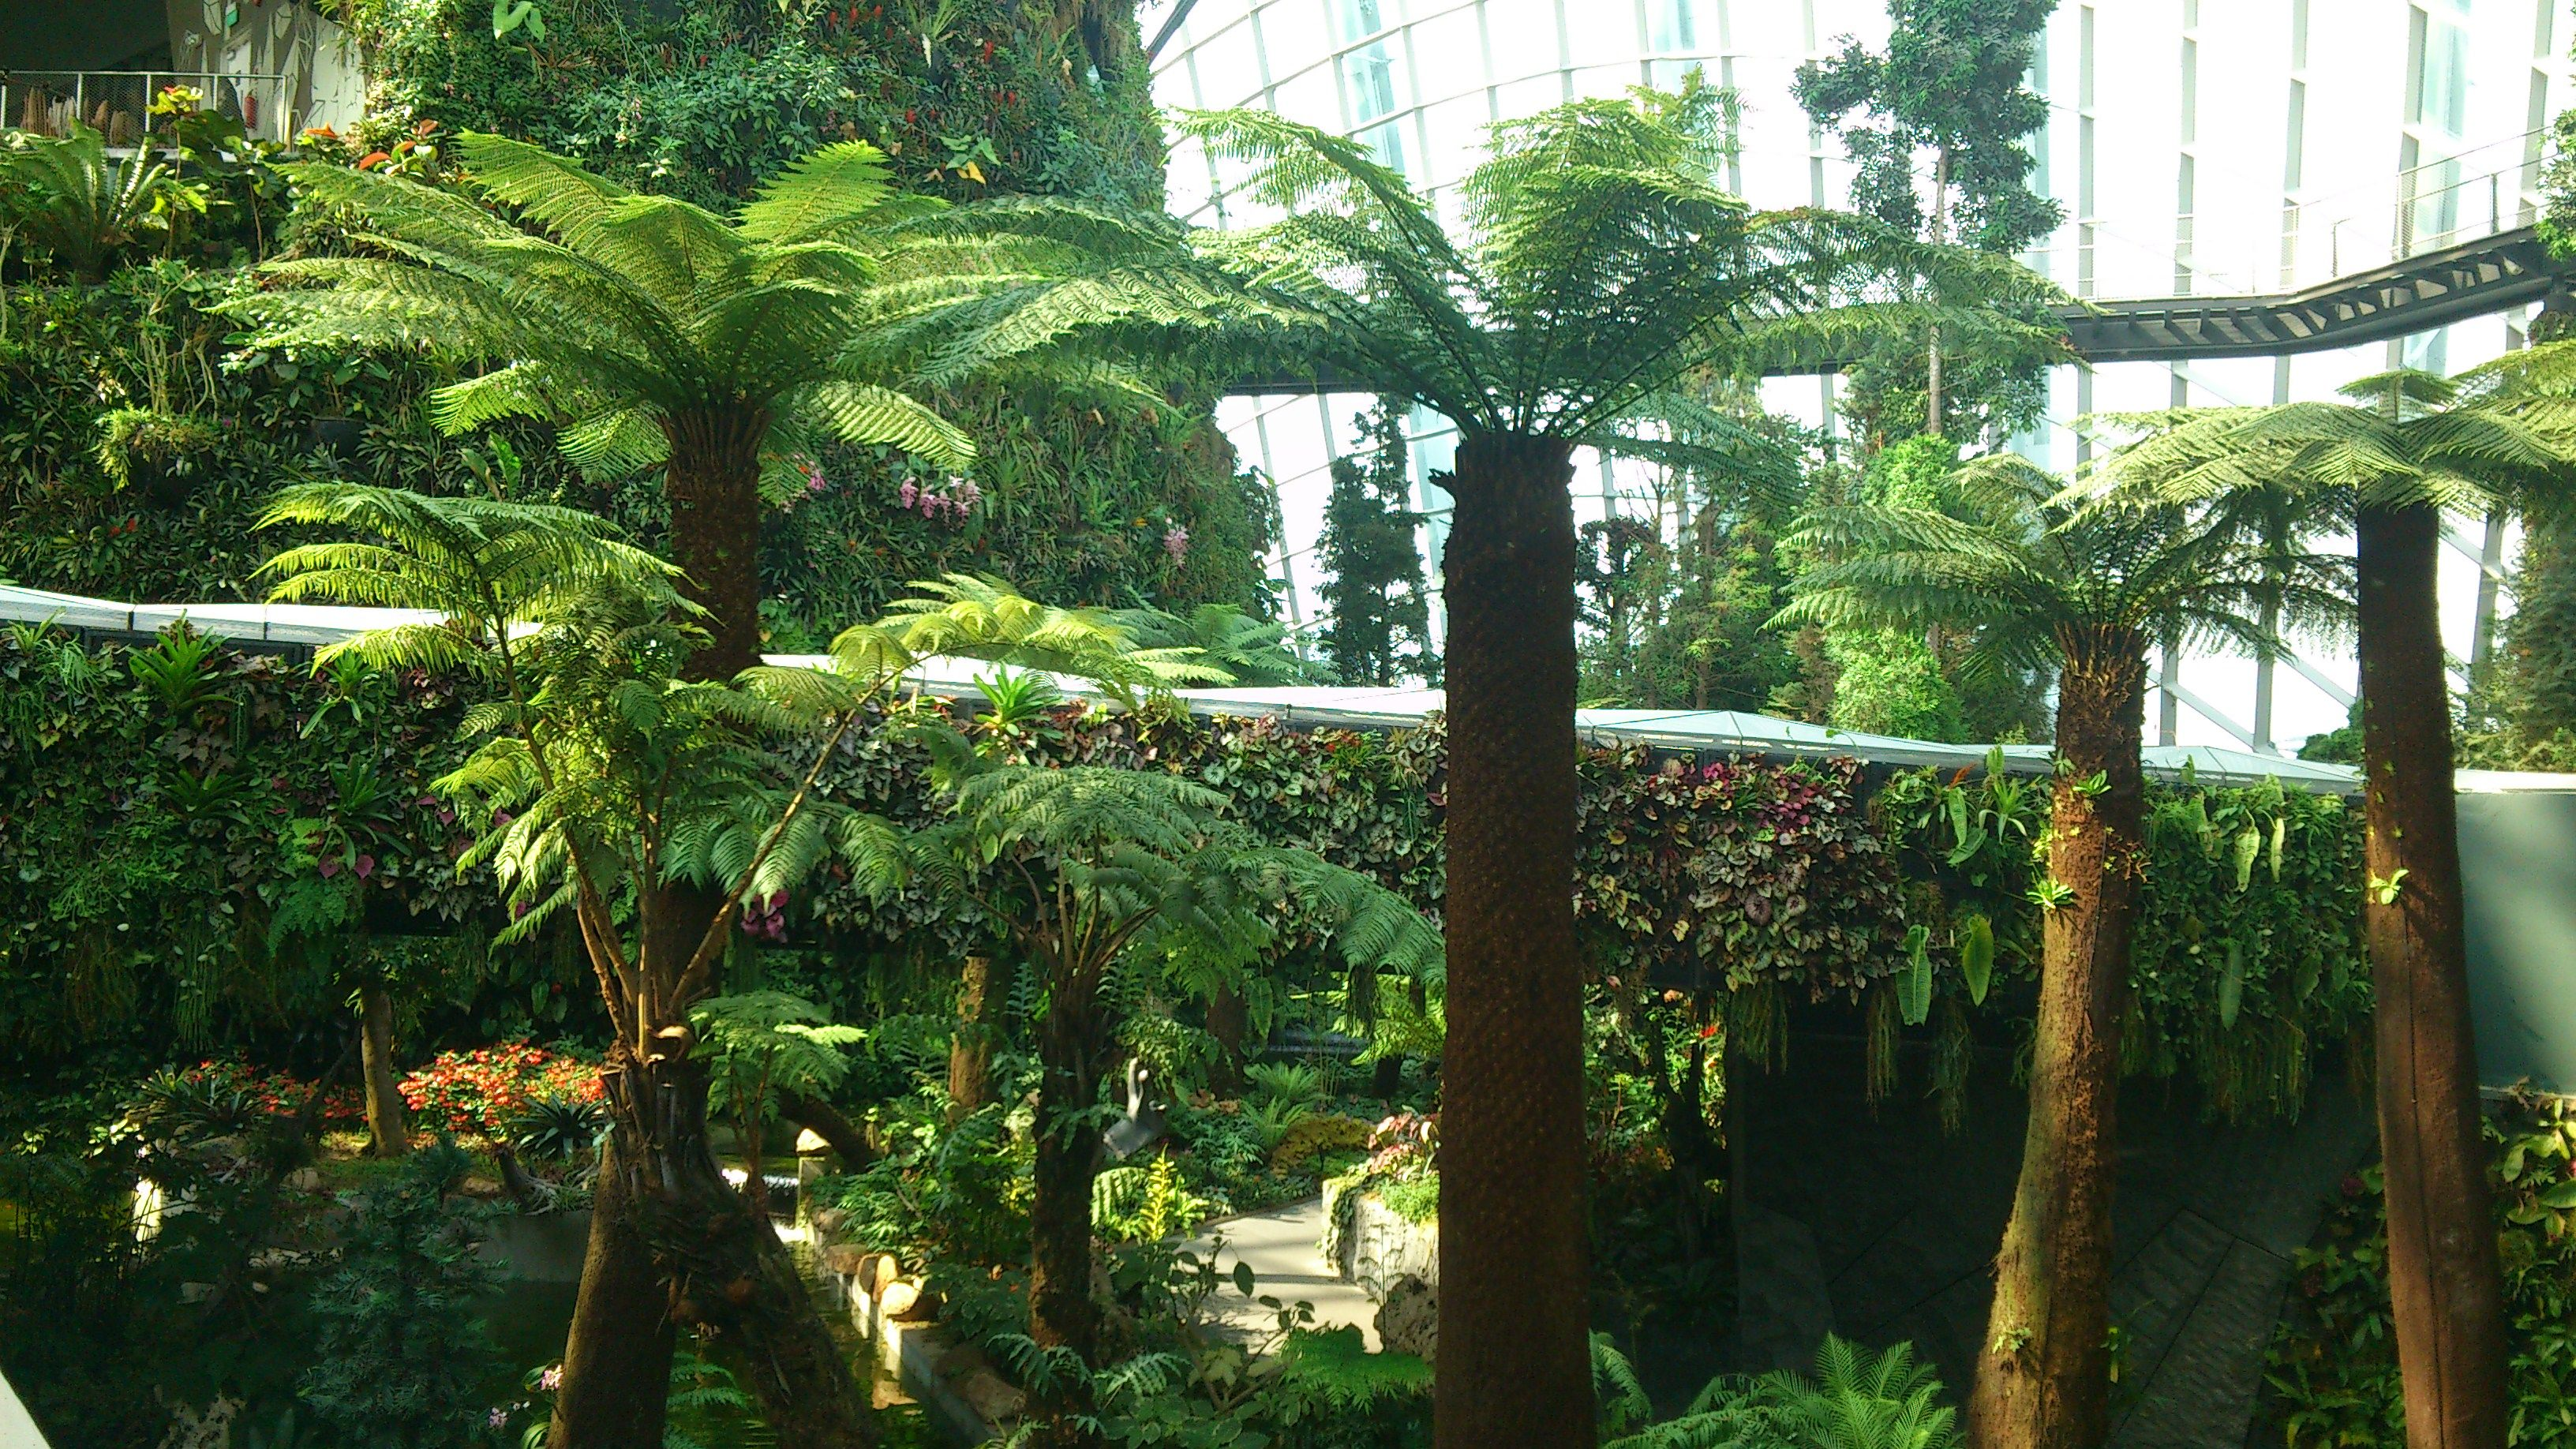 Tree Ferns in the Cloud Forest, Gardens by the bay